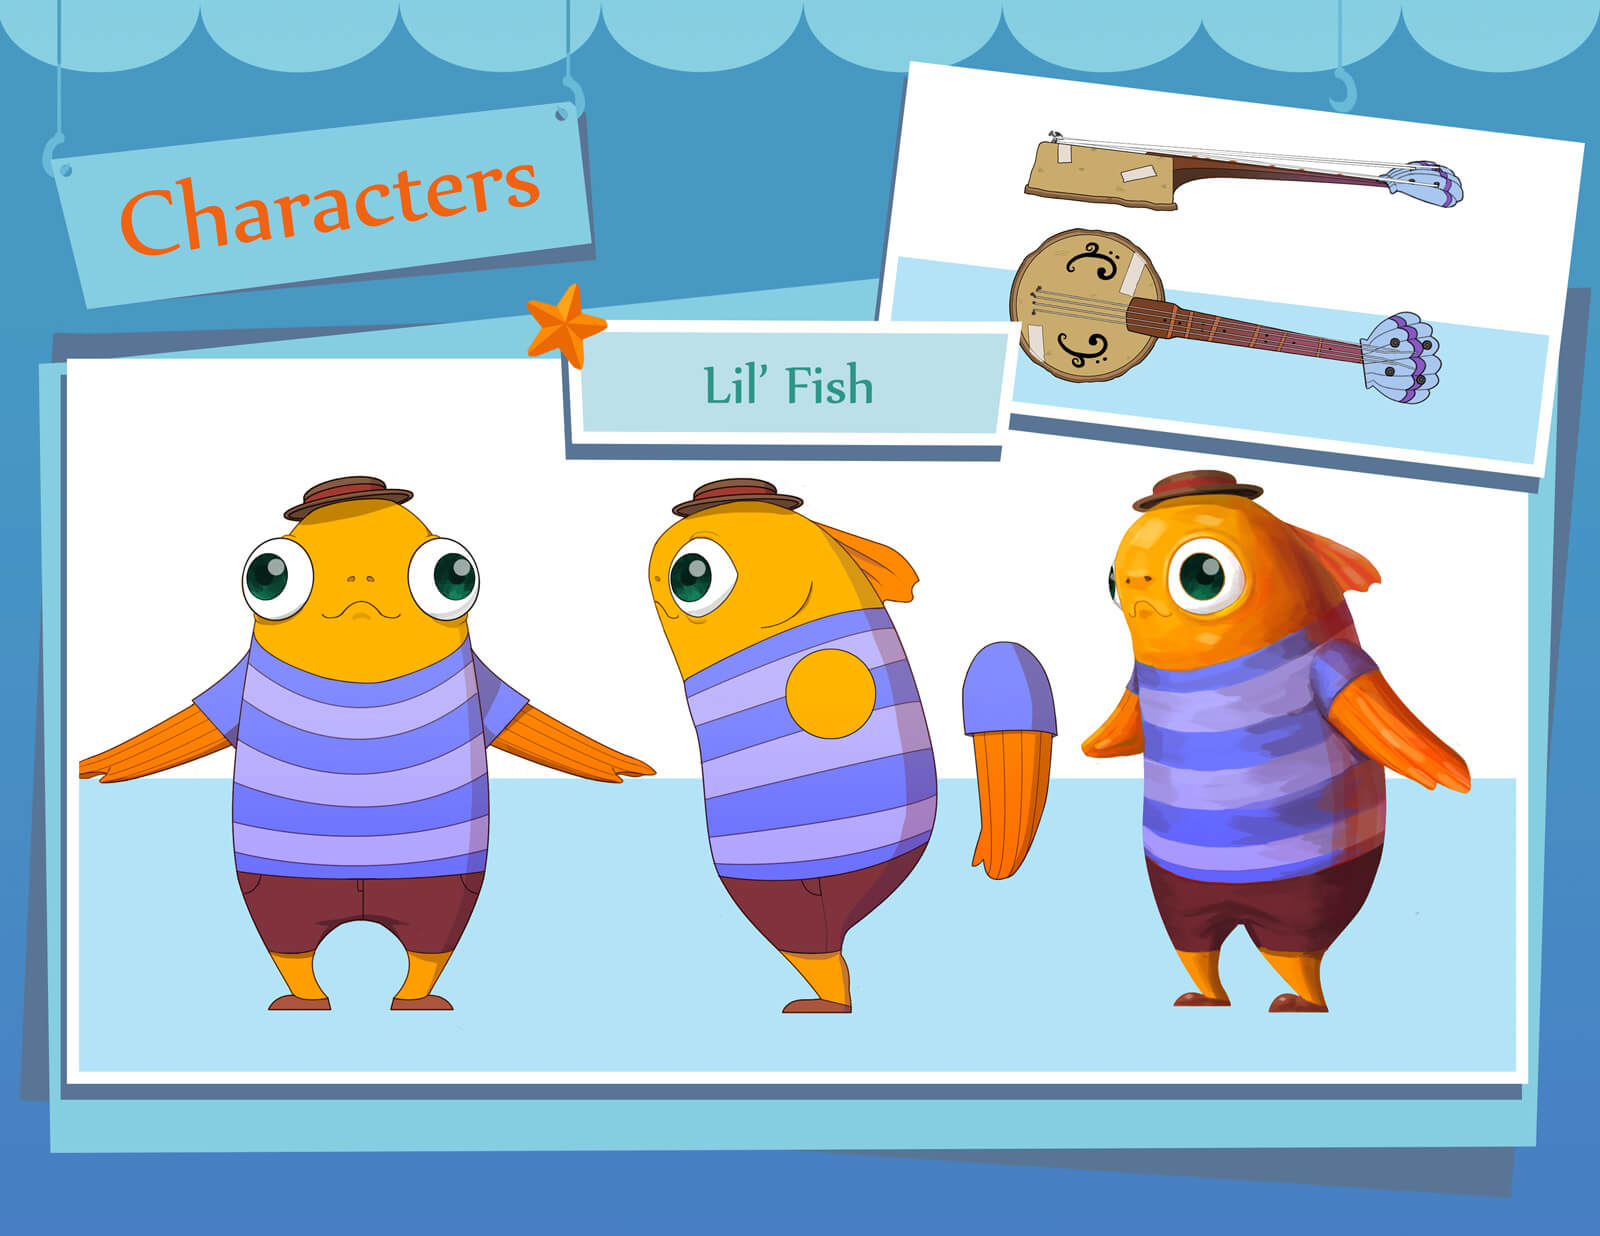 2D color sketches and drawings of an orange fish in a striped blue t-shirt with a banjo, labeled Lil' Fish